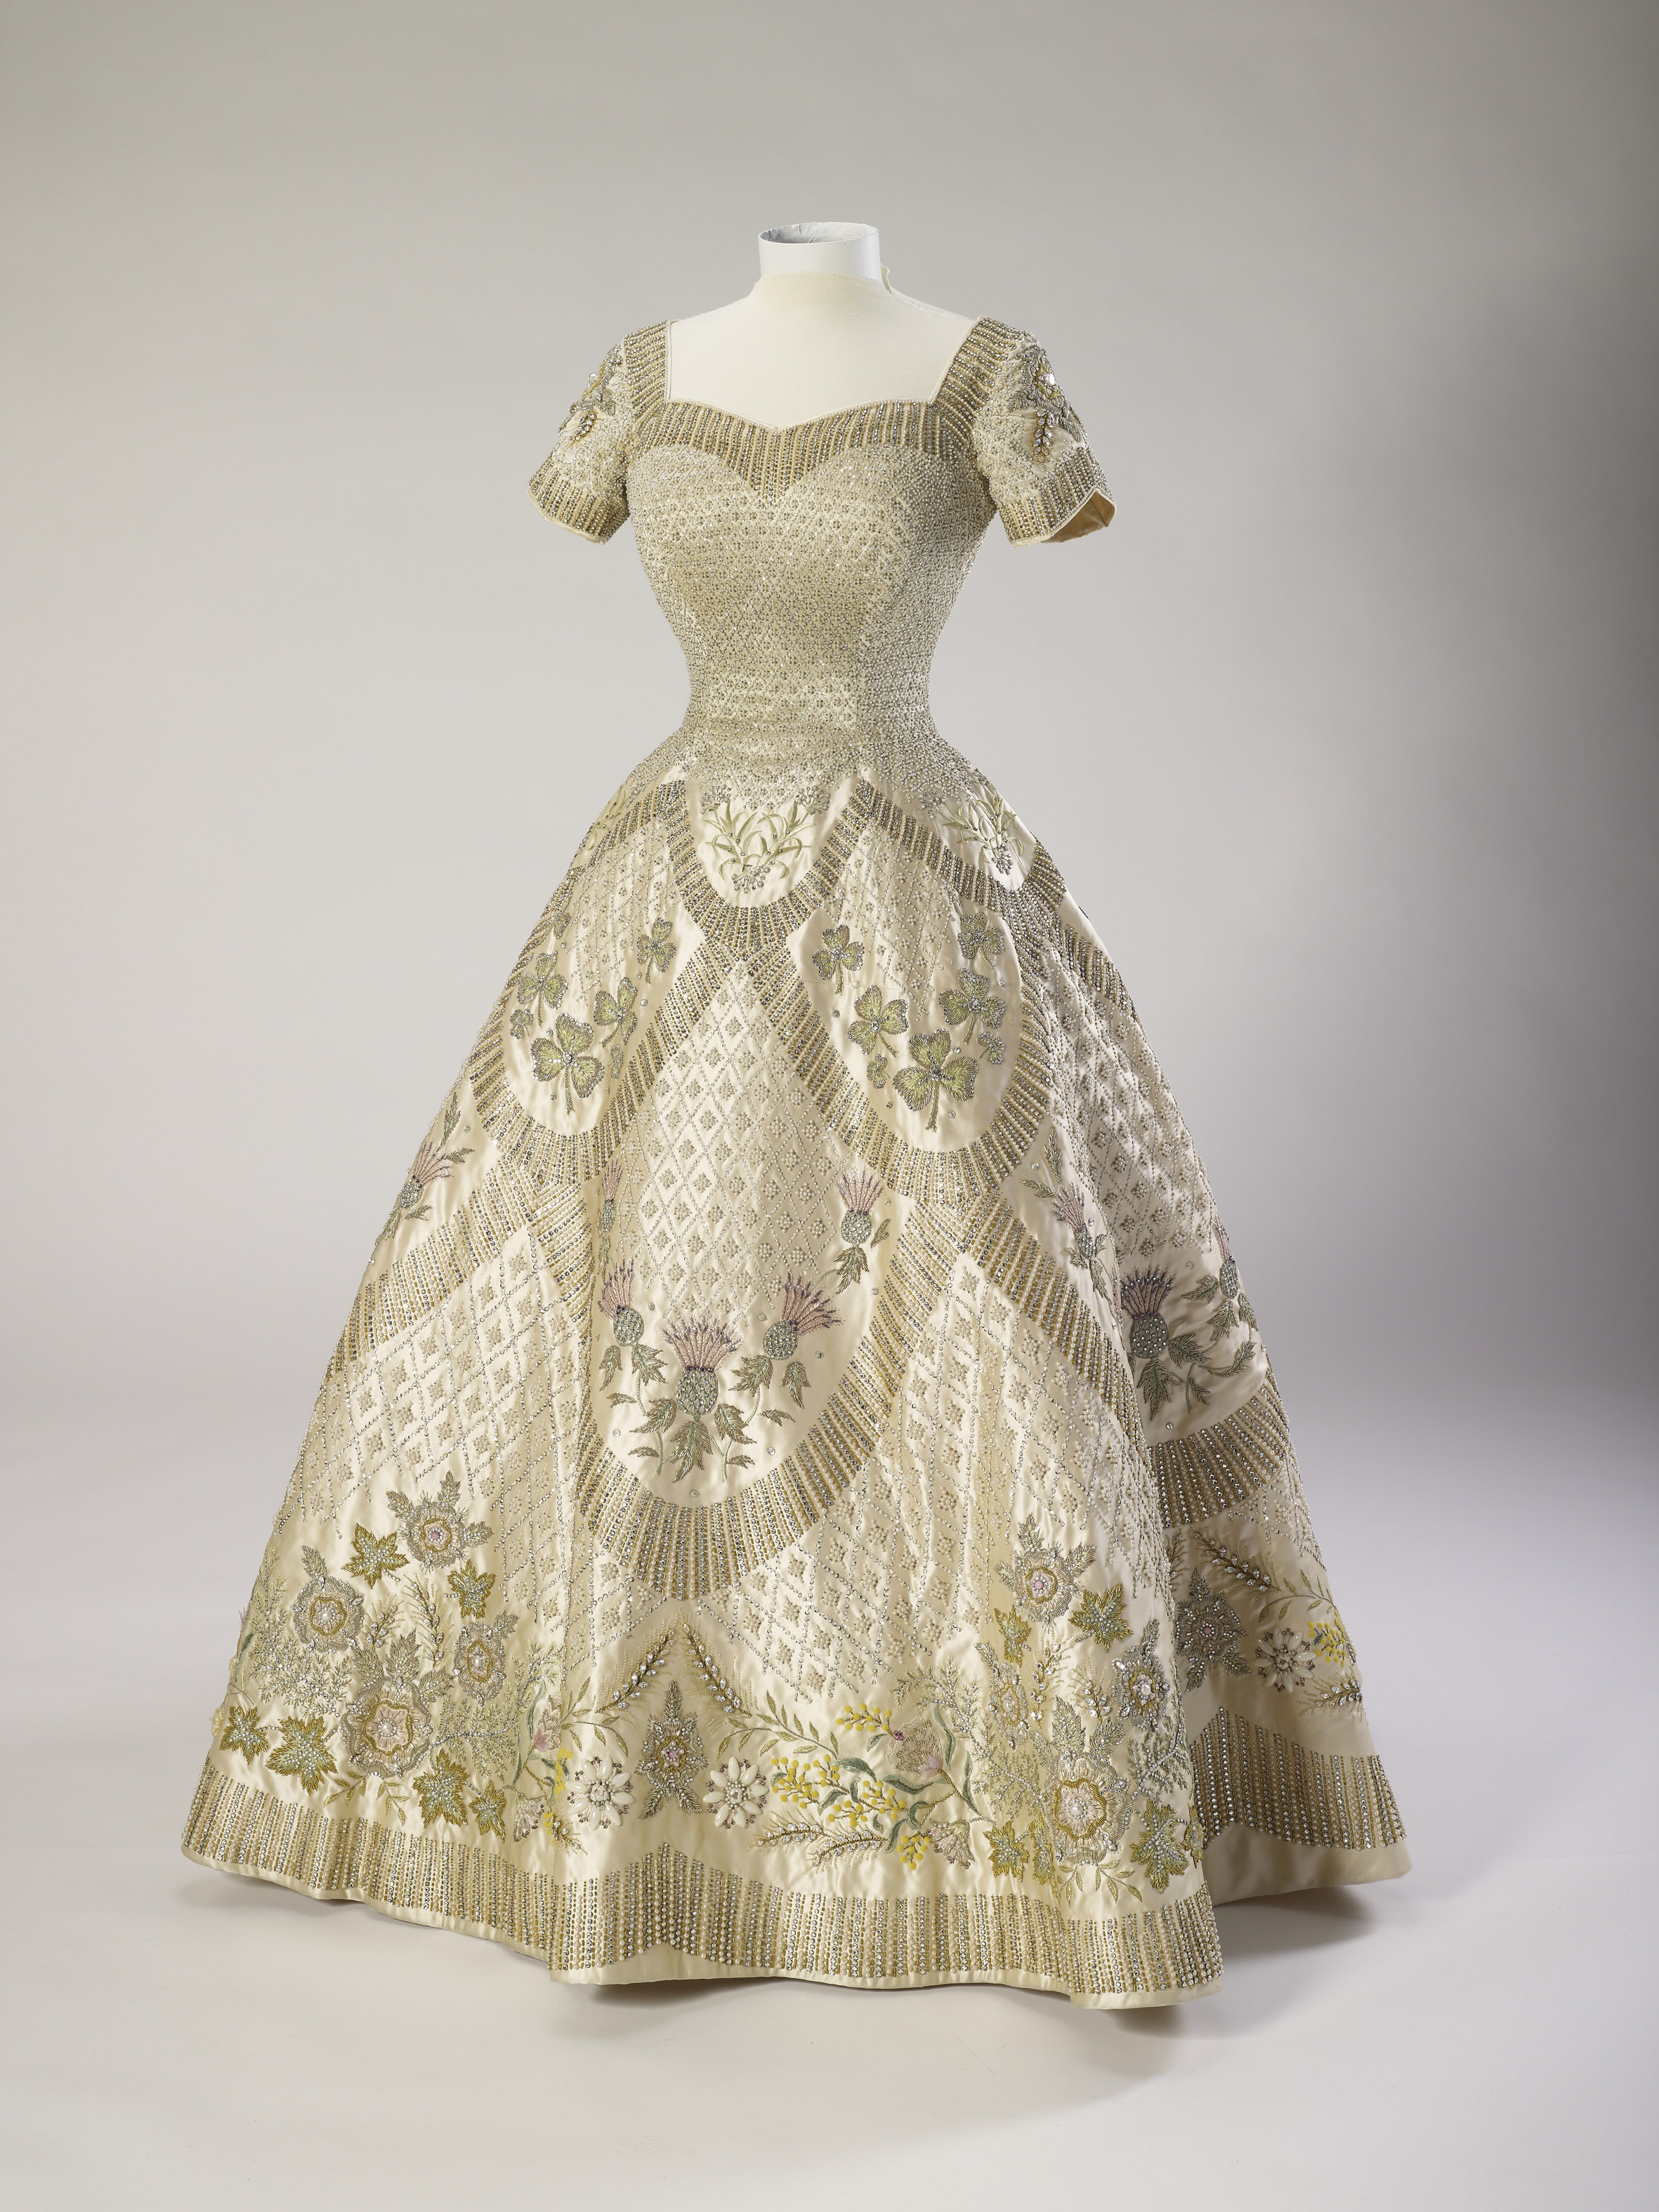 Her Majesty The Queen's Coronation dress, 1953, Norman Hartnell